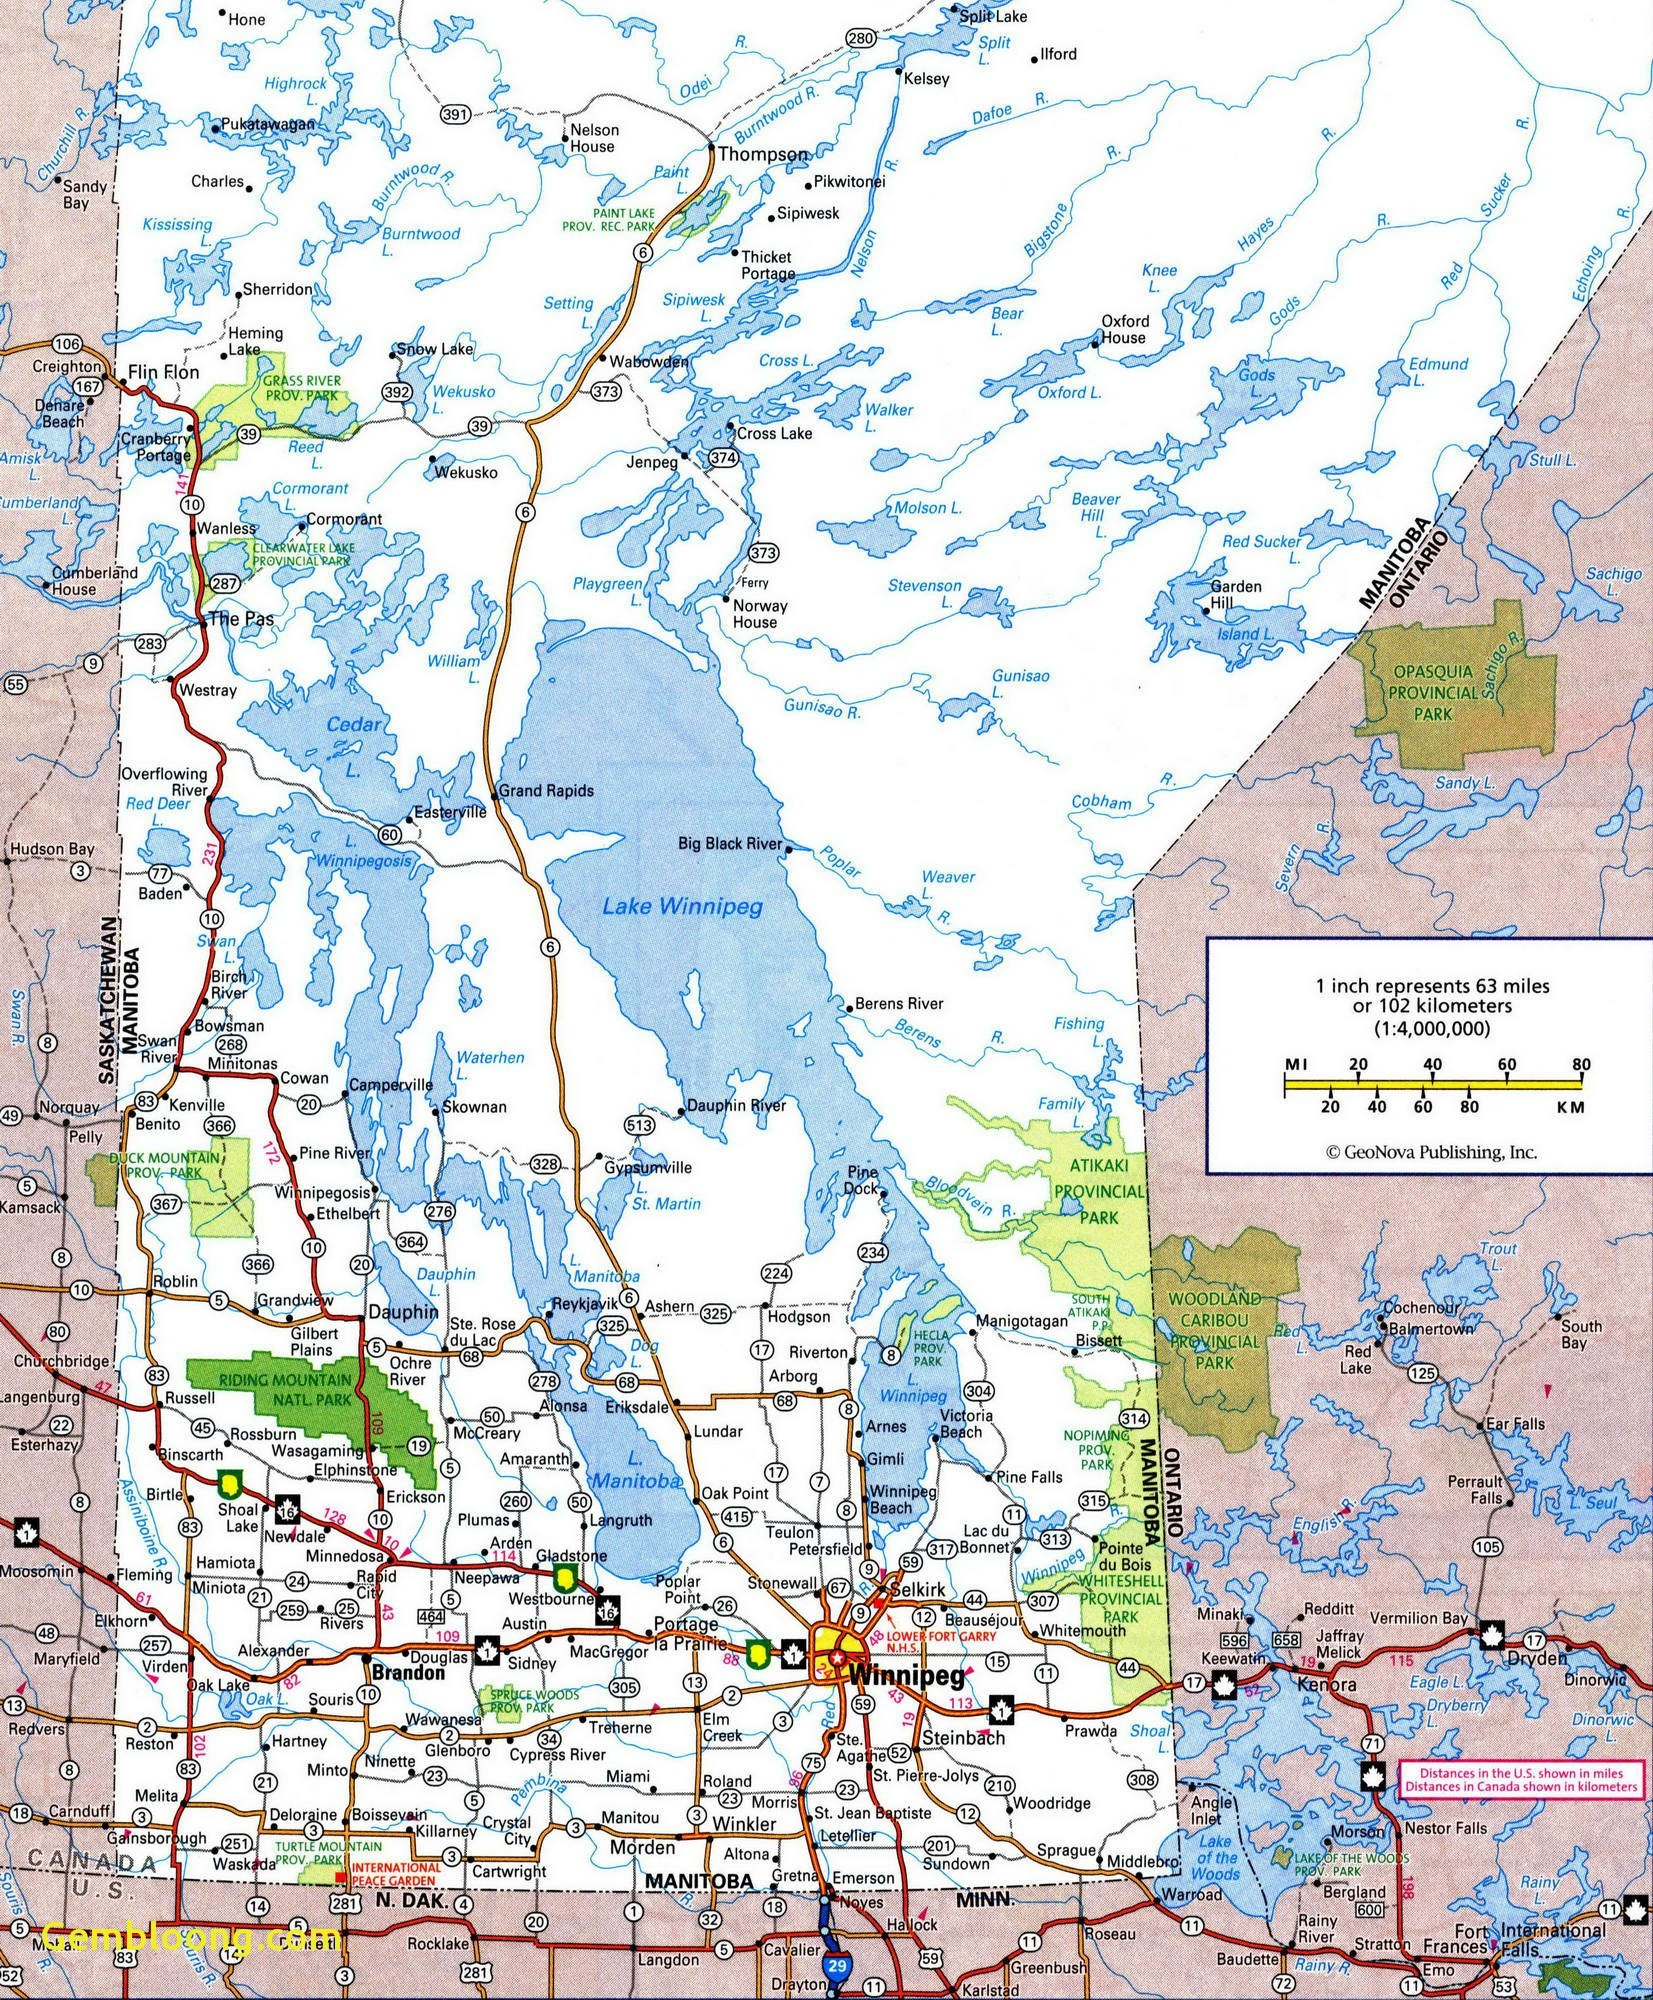 Us Map Showing Naples Florida Inspirational Naples Florida Us Map - Map Of Naples Florida And Surrounding Area